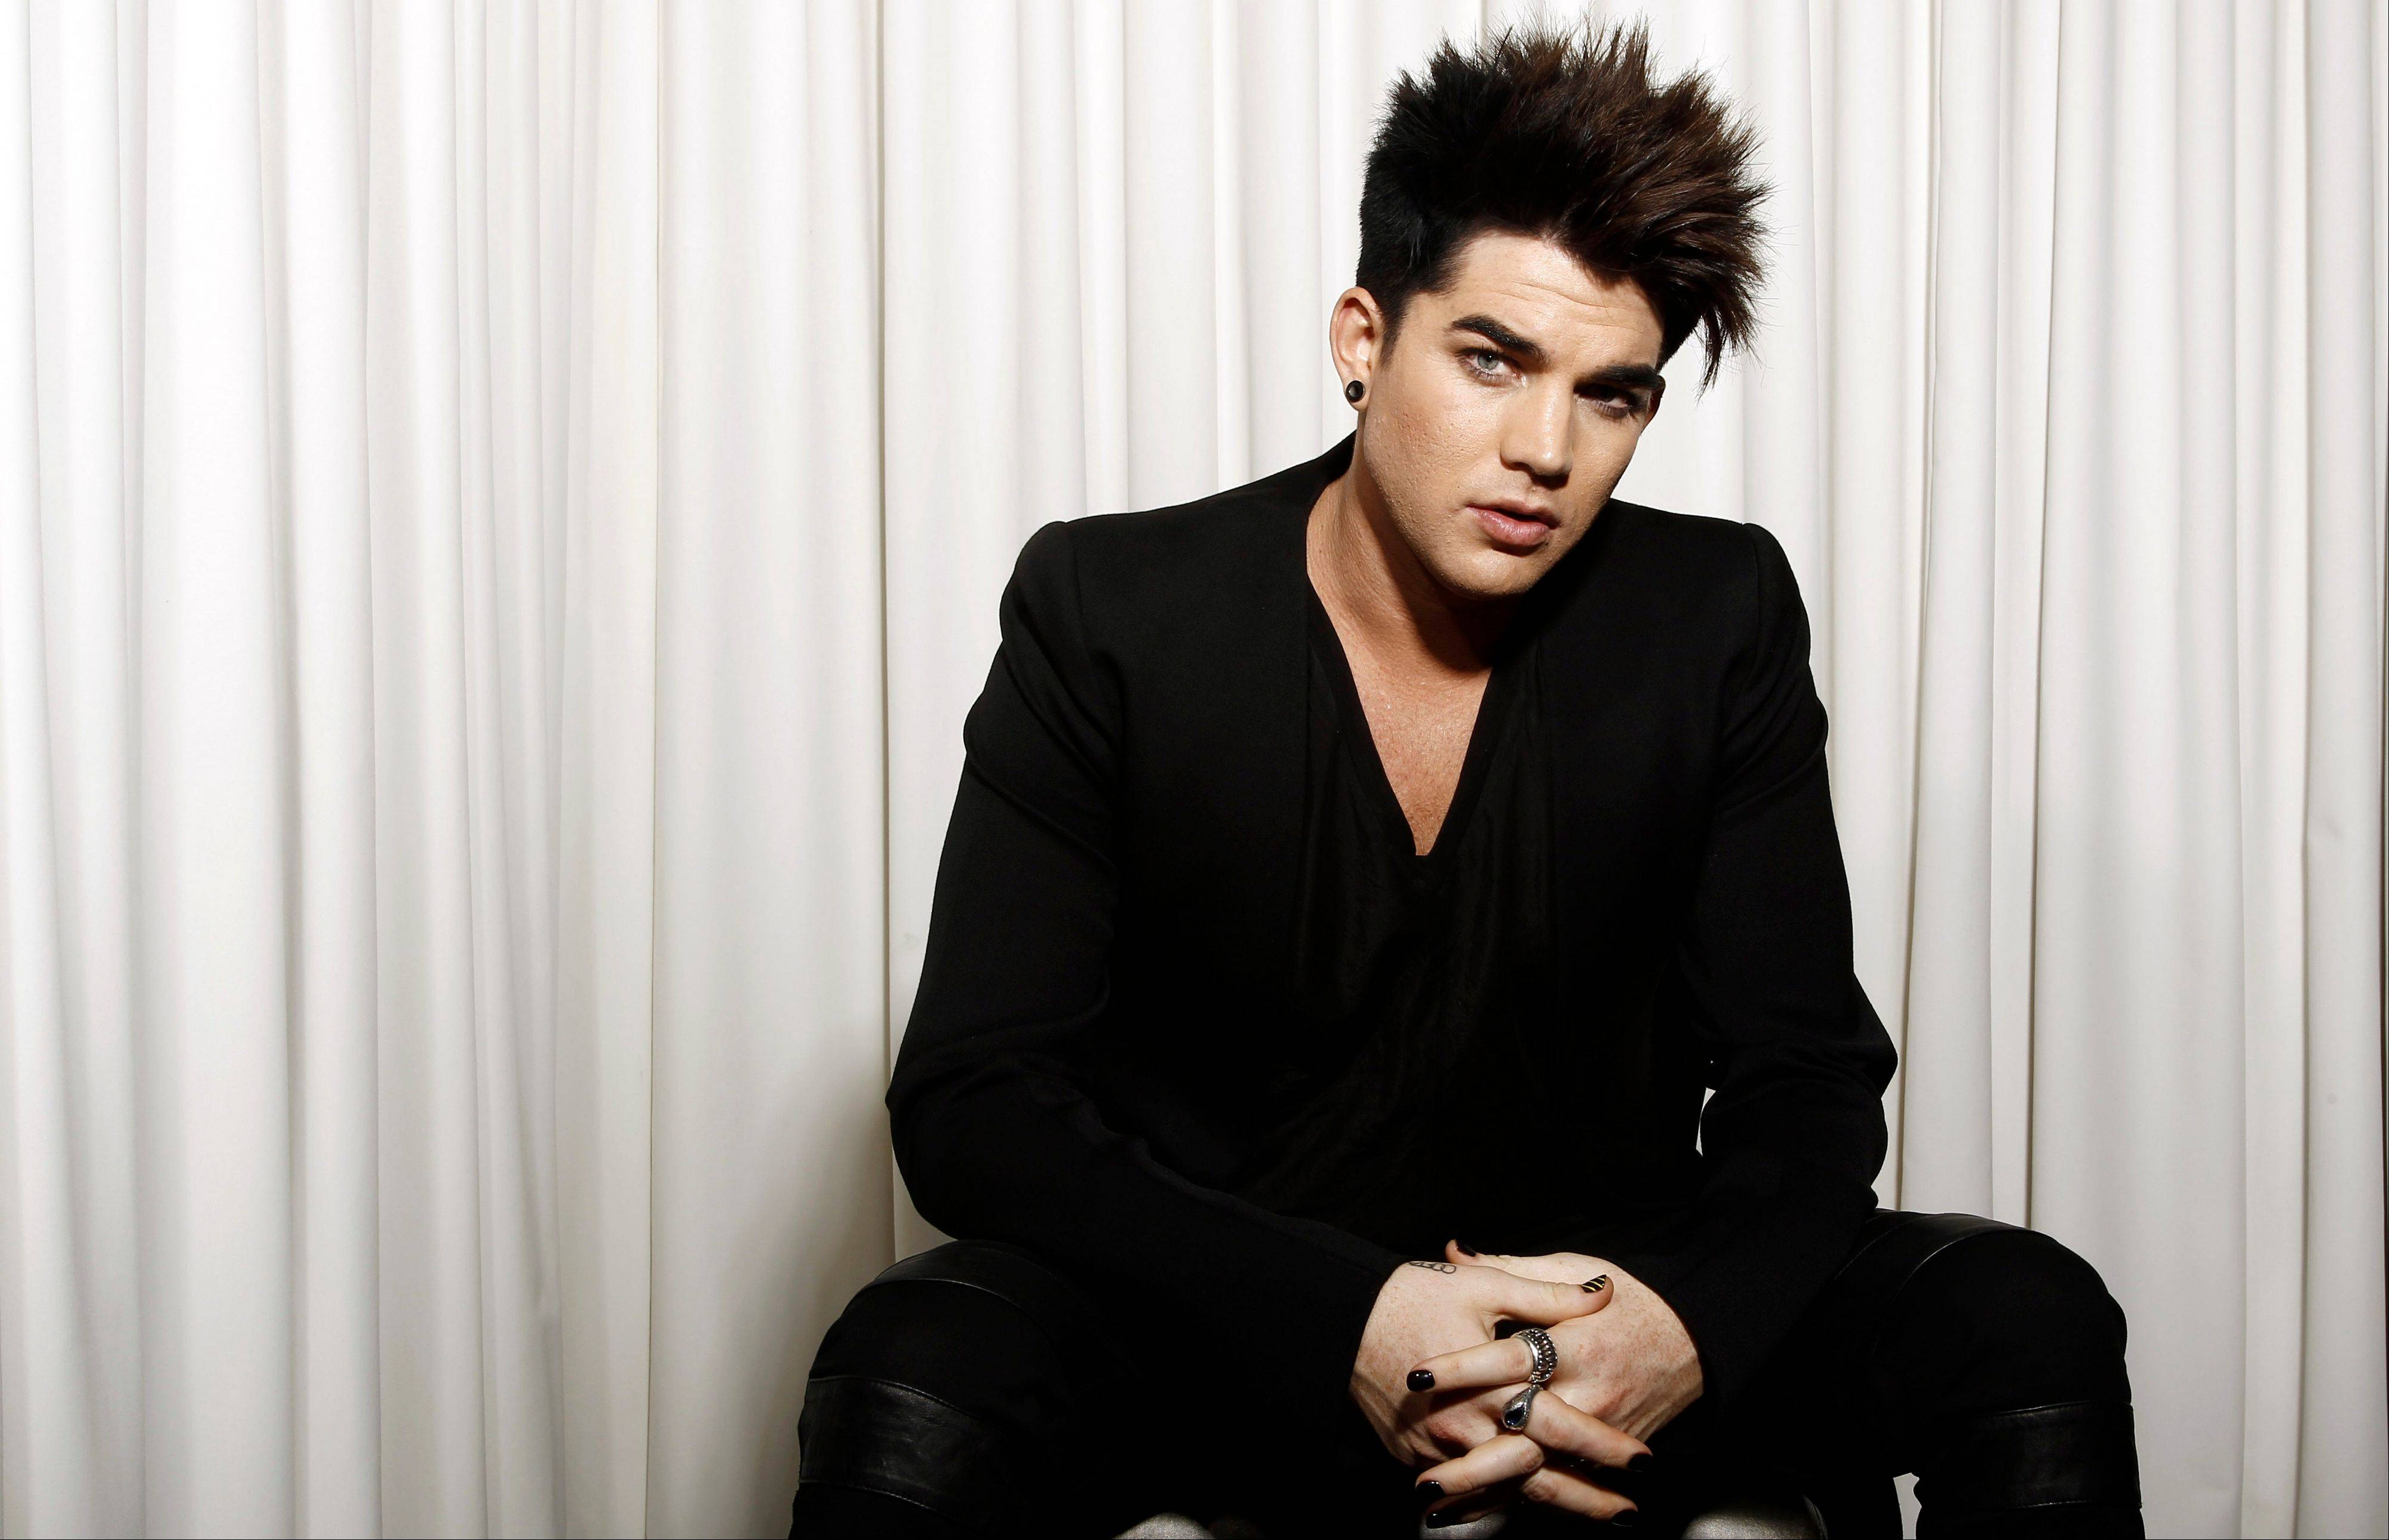 Musician Adam Lambert will host and perform at the �VH1 Divas� event in New York.